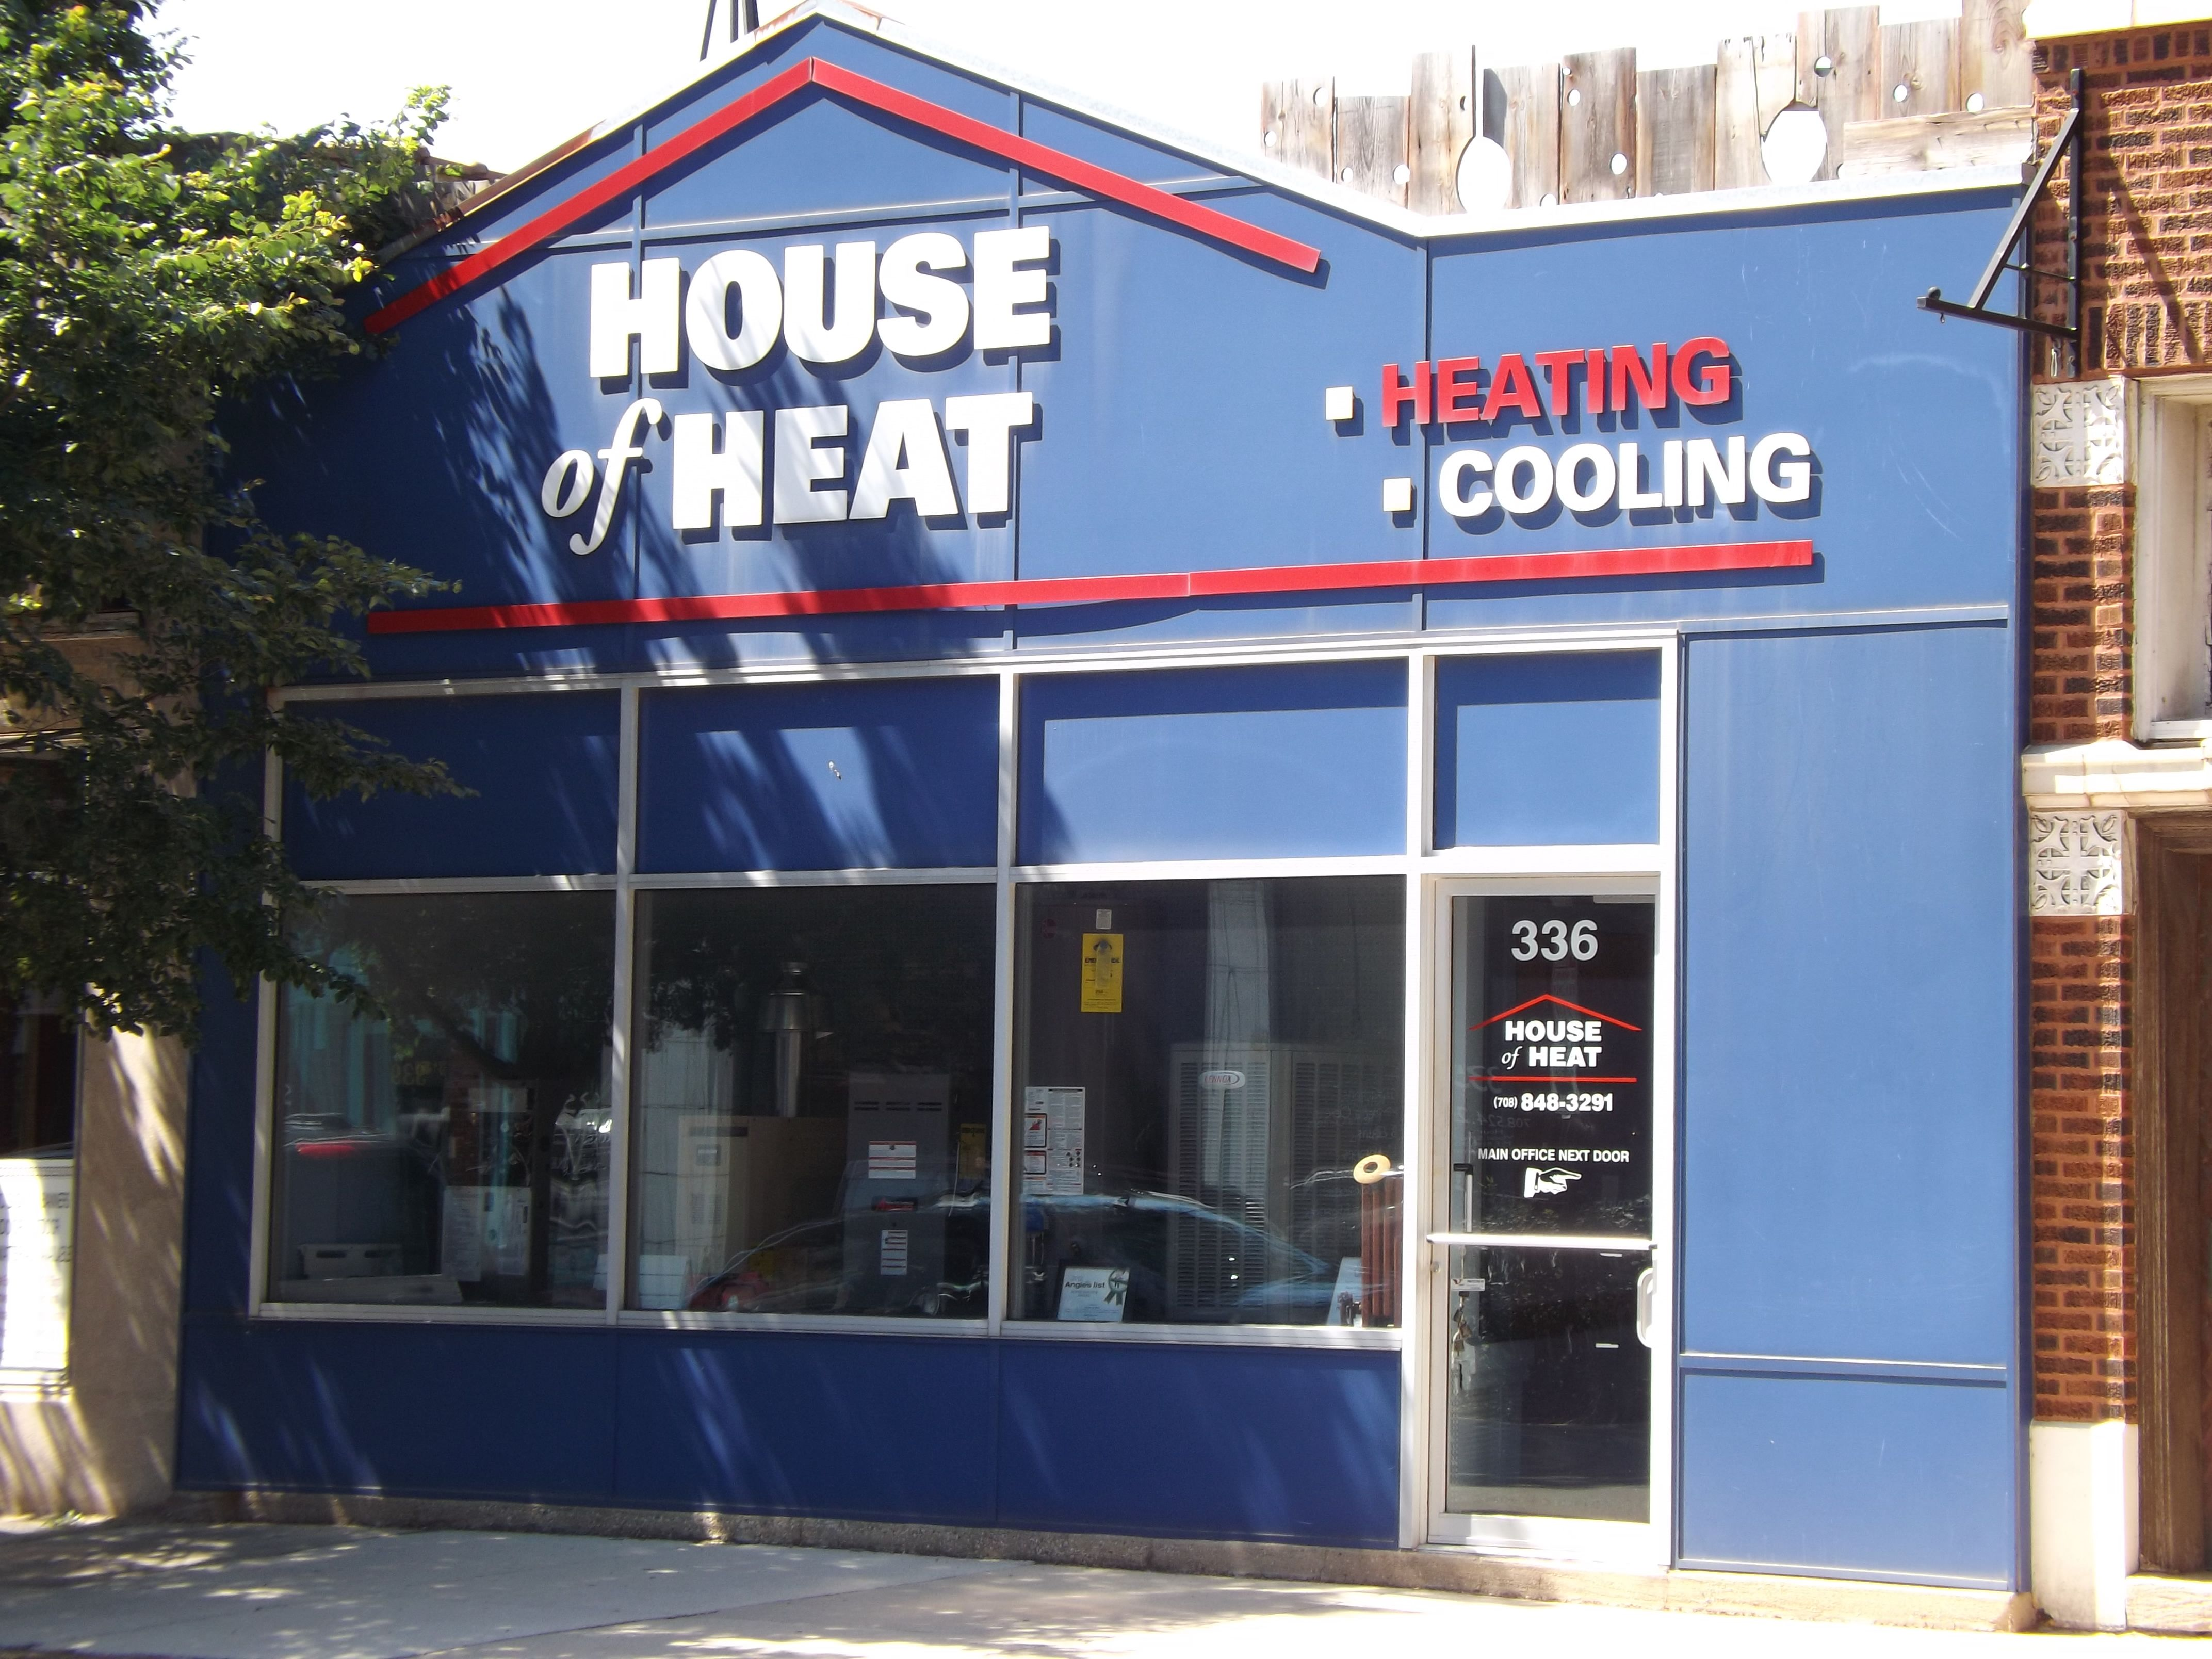 House Of Heat Heating And Cooling Opad Oakpark House Heating Oak Park House